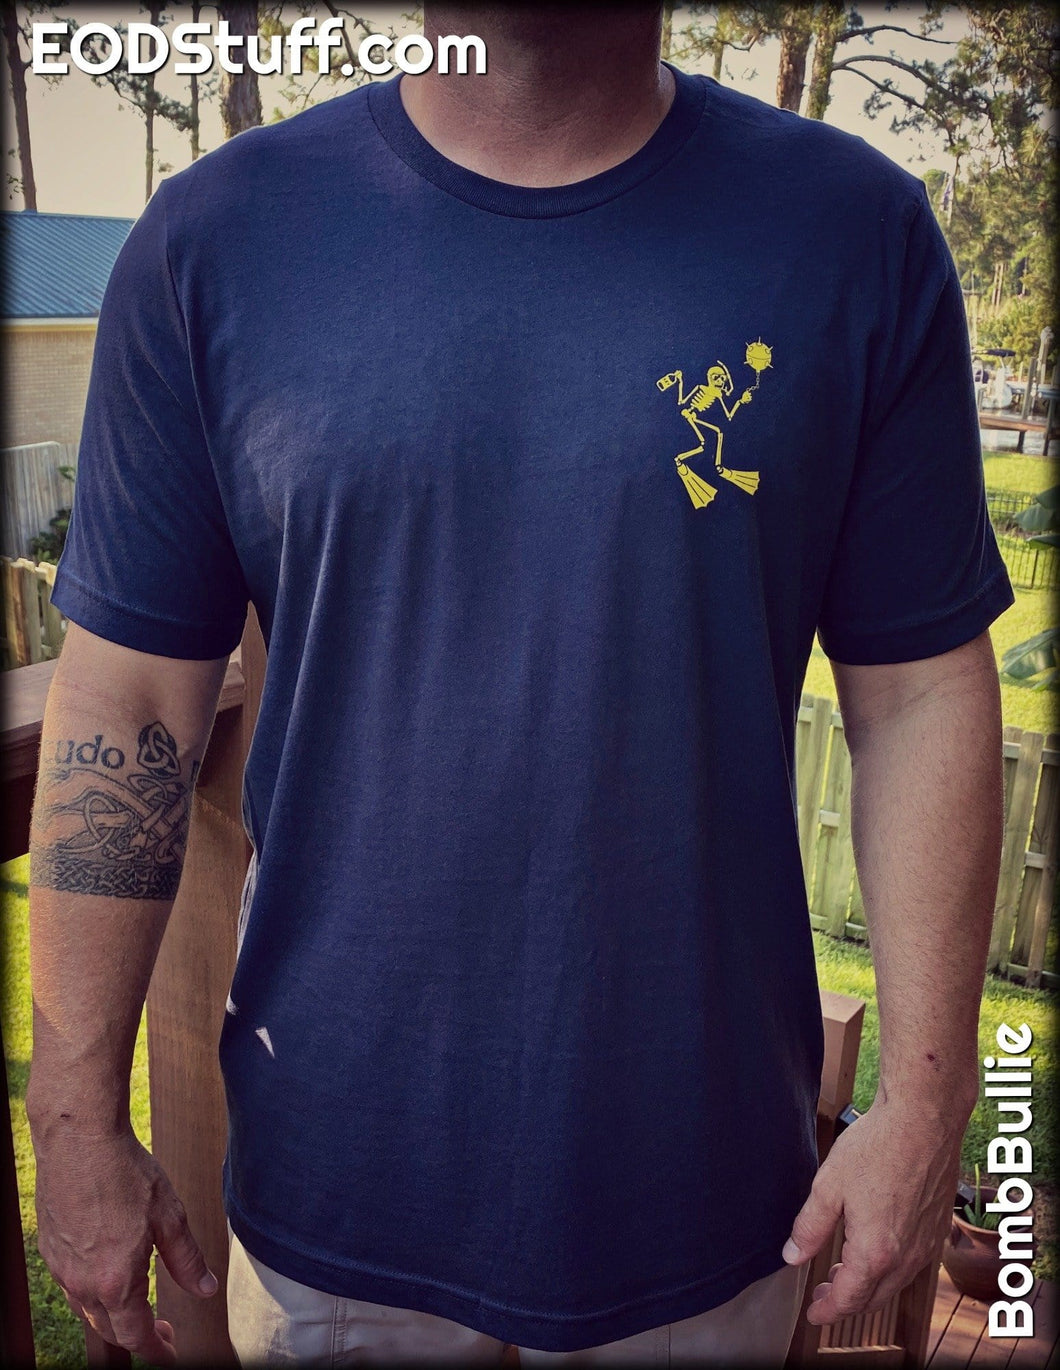 Scuba Skeebb and EOMFD Mine Yellow/Navy Tee - Unisex EOD T-Shirt